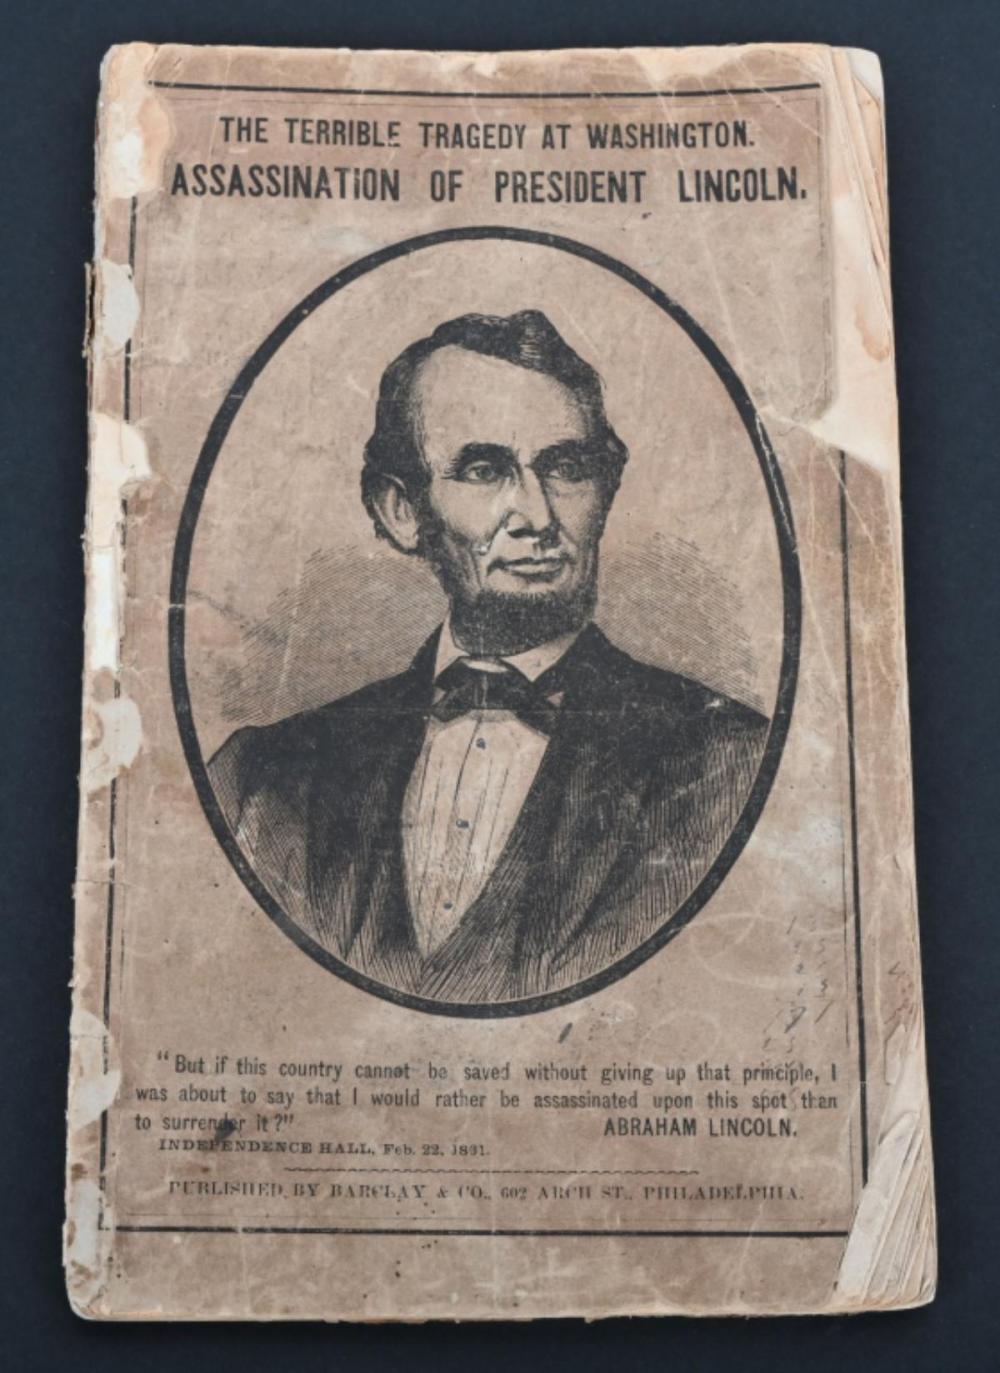 1865 ASSASSINATION OF PRESIDENT LINCOLN, BARCLAY